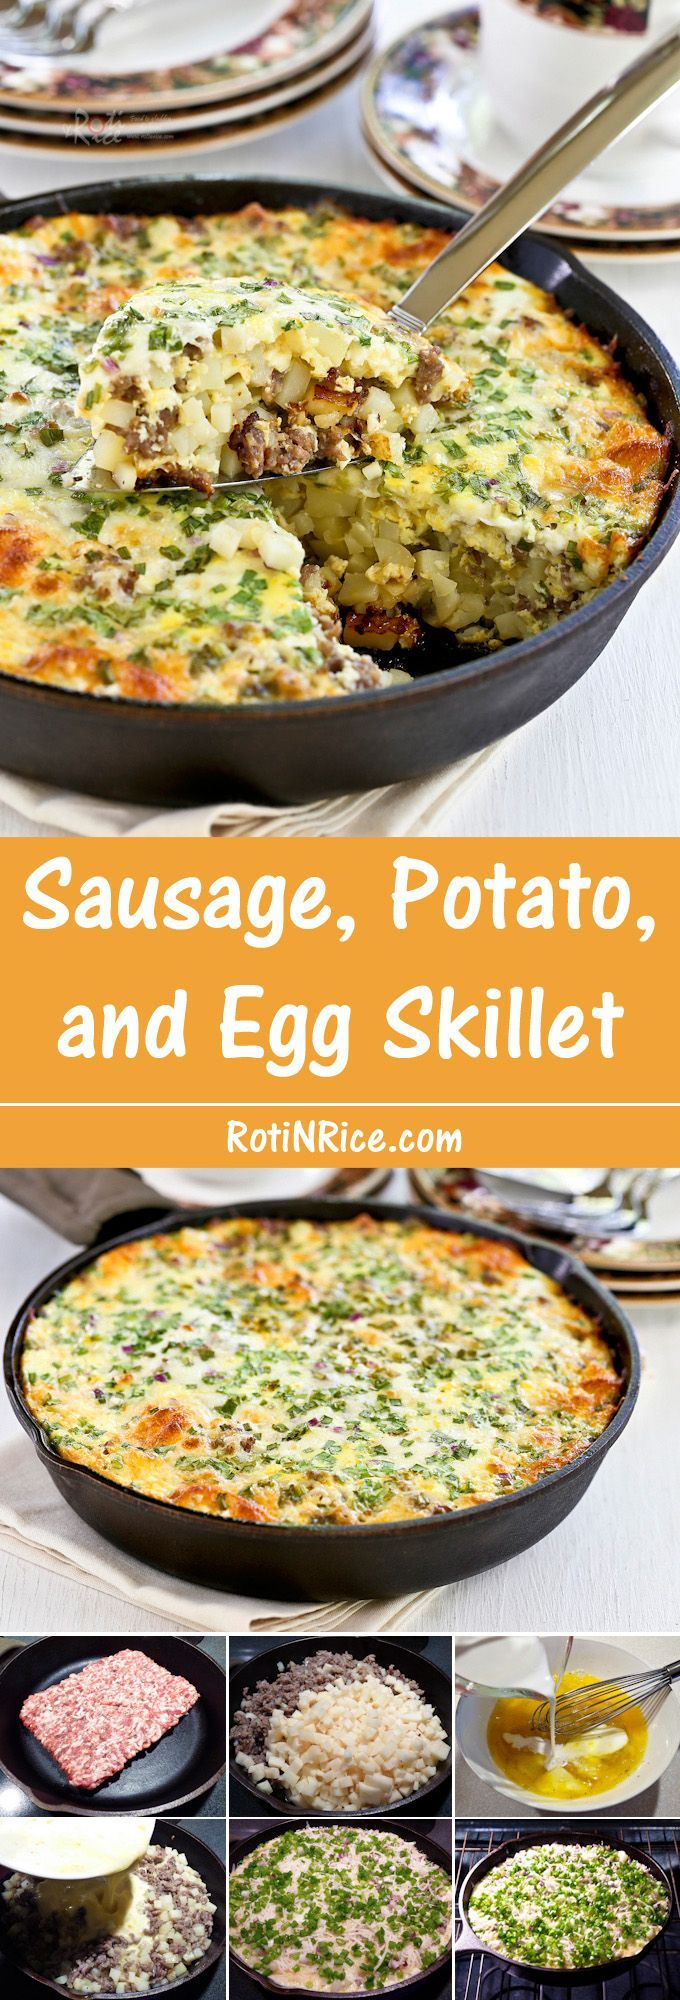 Potato, and Egg Skillet Wake up to this delicious Sausage, Potato, and Egg Skillet topped with shredded cheese and green onions. Makes a wonderful weekend breakfast or brunch treat for the family. | Food to gladden the heart at Wake up to this delicious Sausage, Potato, and Egg Skillet topped with shredded cheese and green onions. Makes a won...